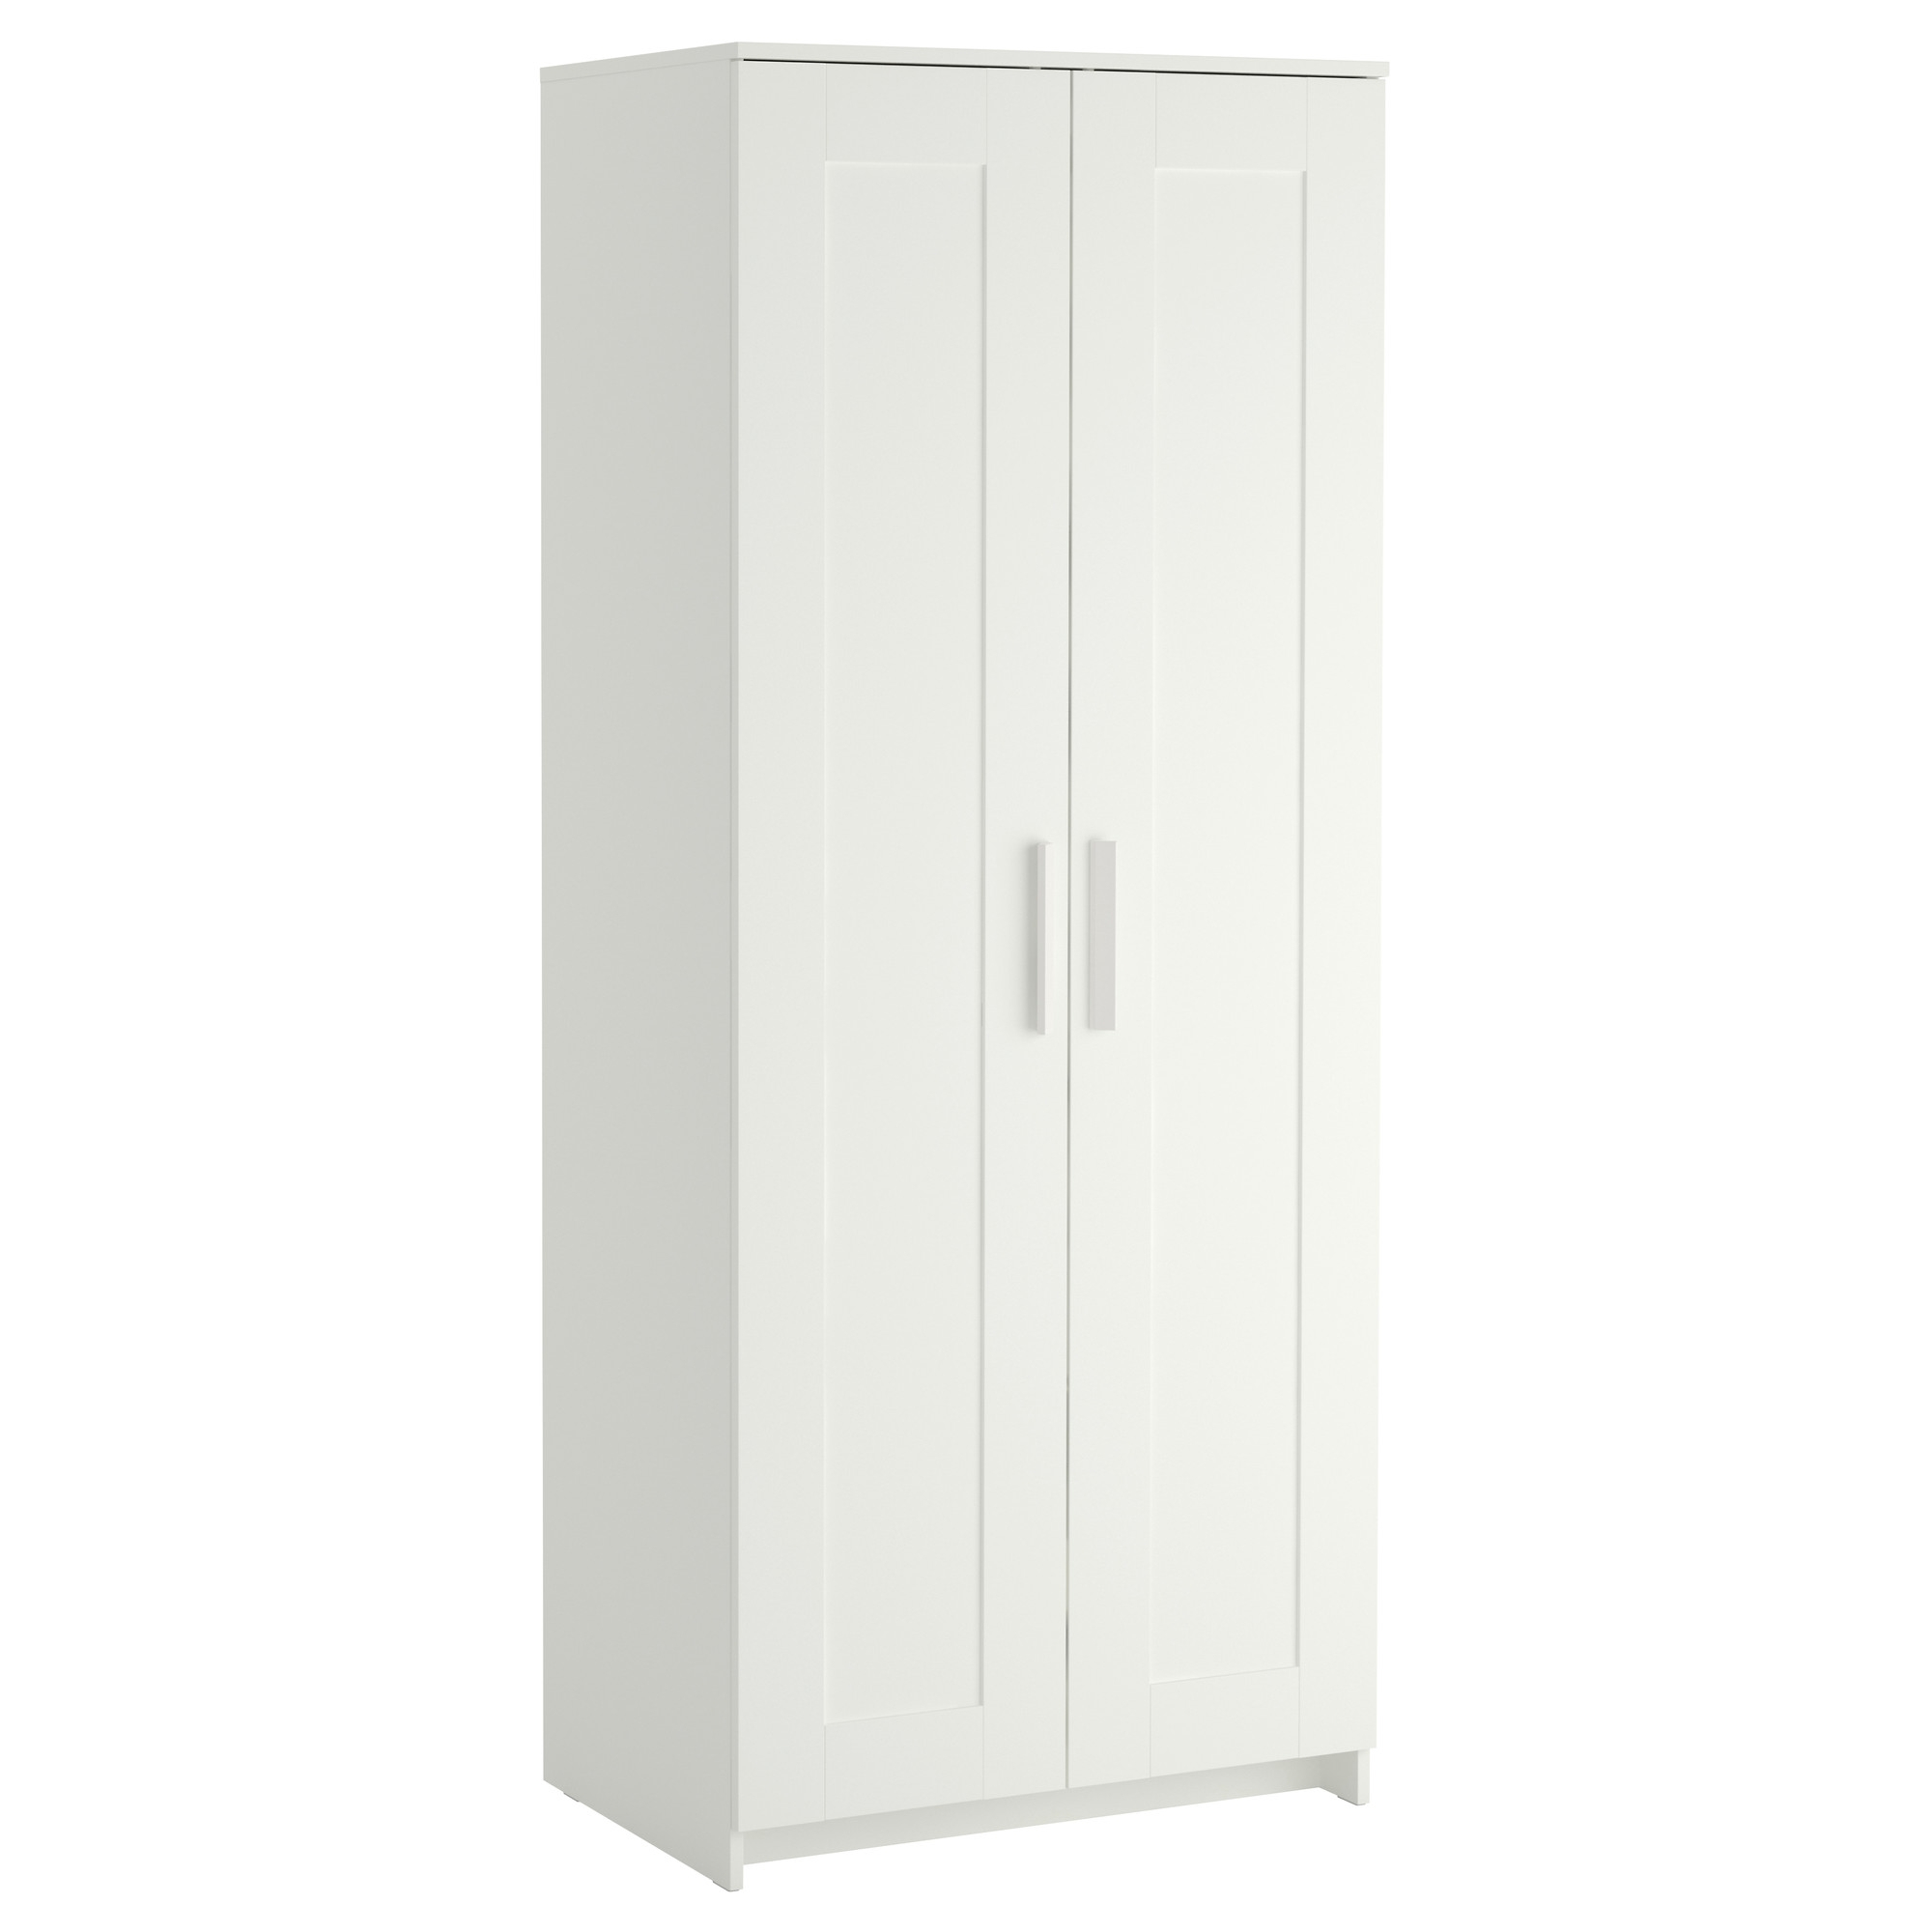 Brimnes Wardrobe With 2 Doors White 78X190 Cm – Ikea Regarding Favorite White Double Wardrobes (View 4 of 15)